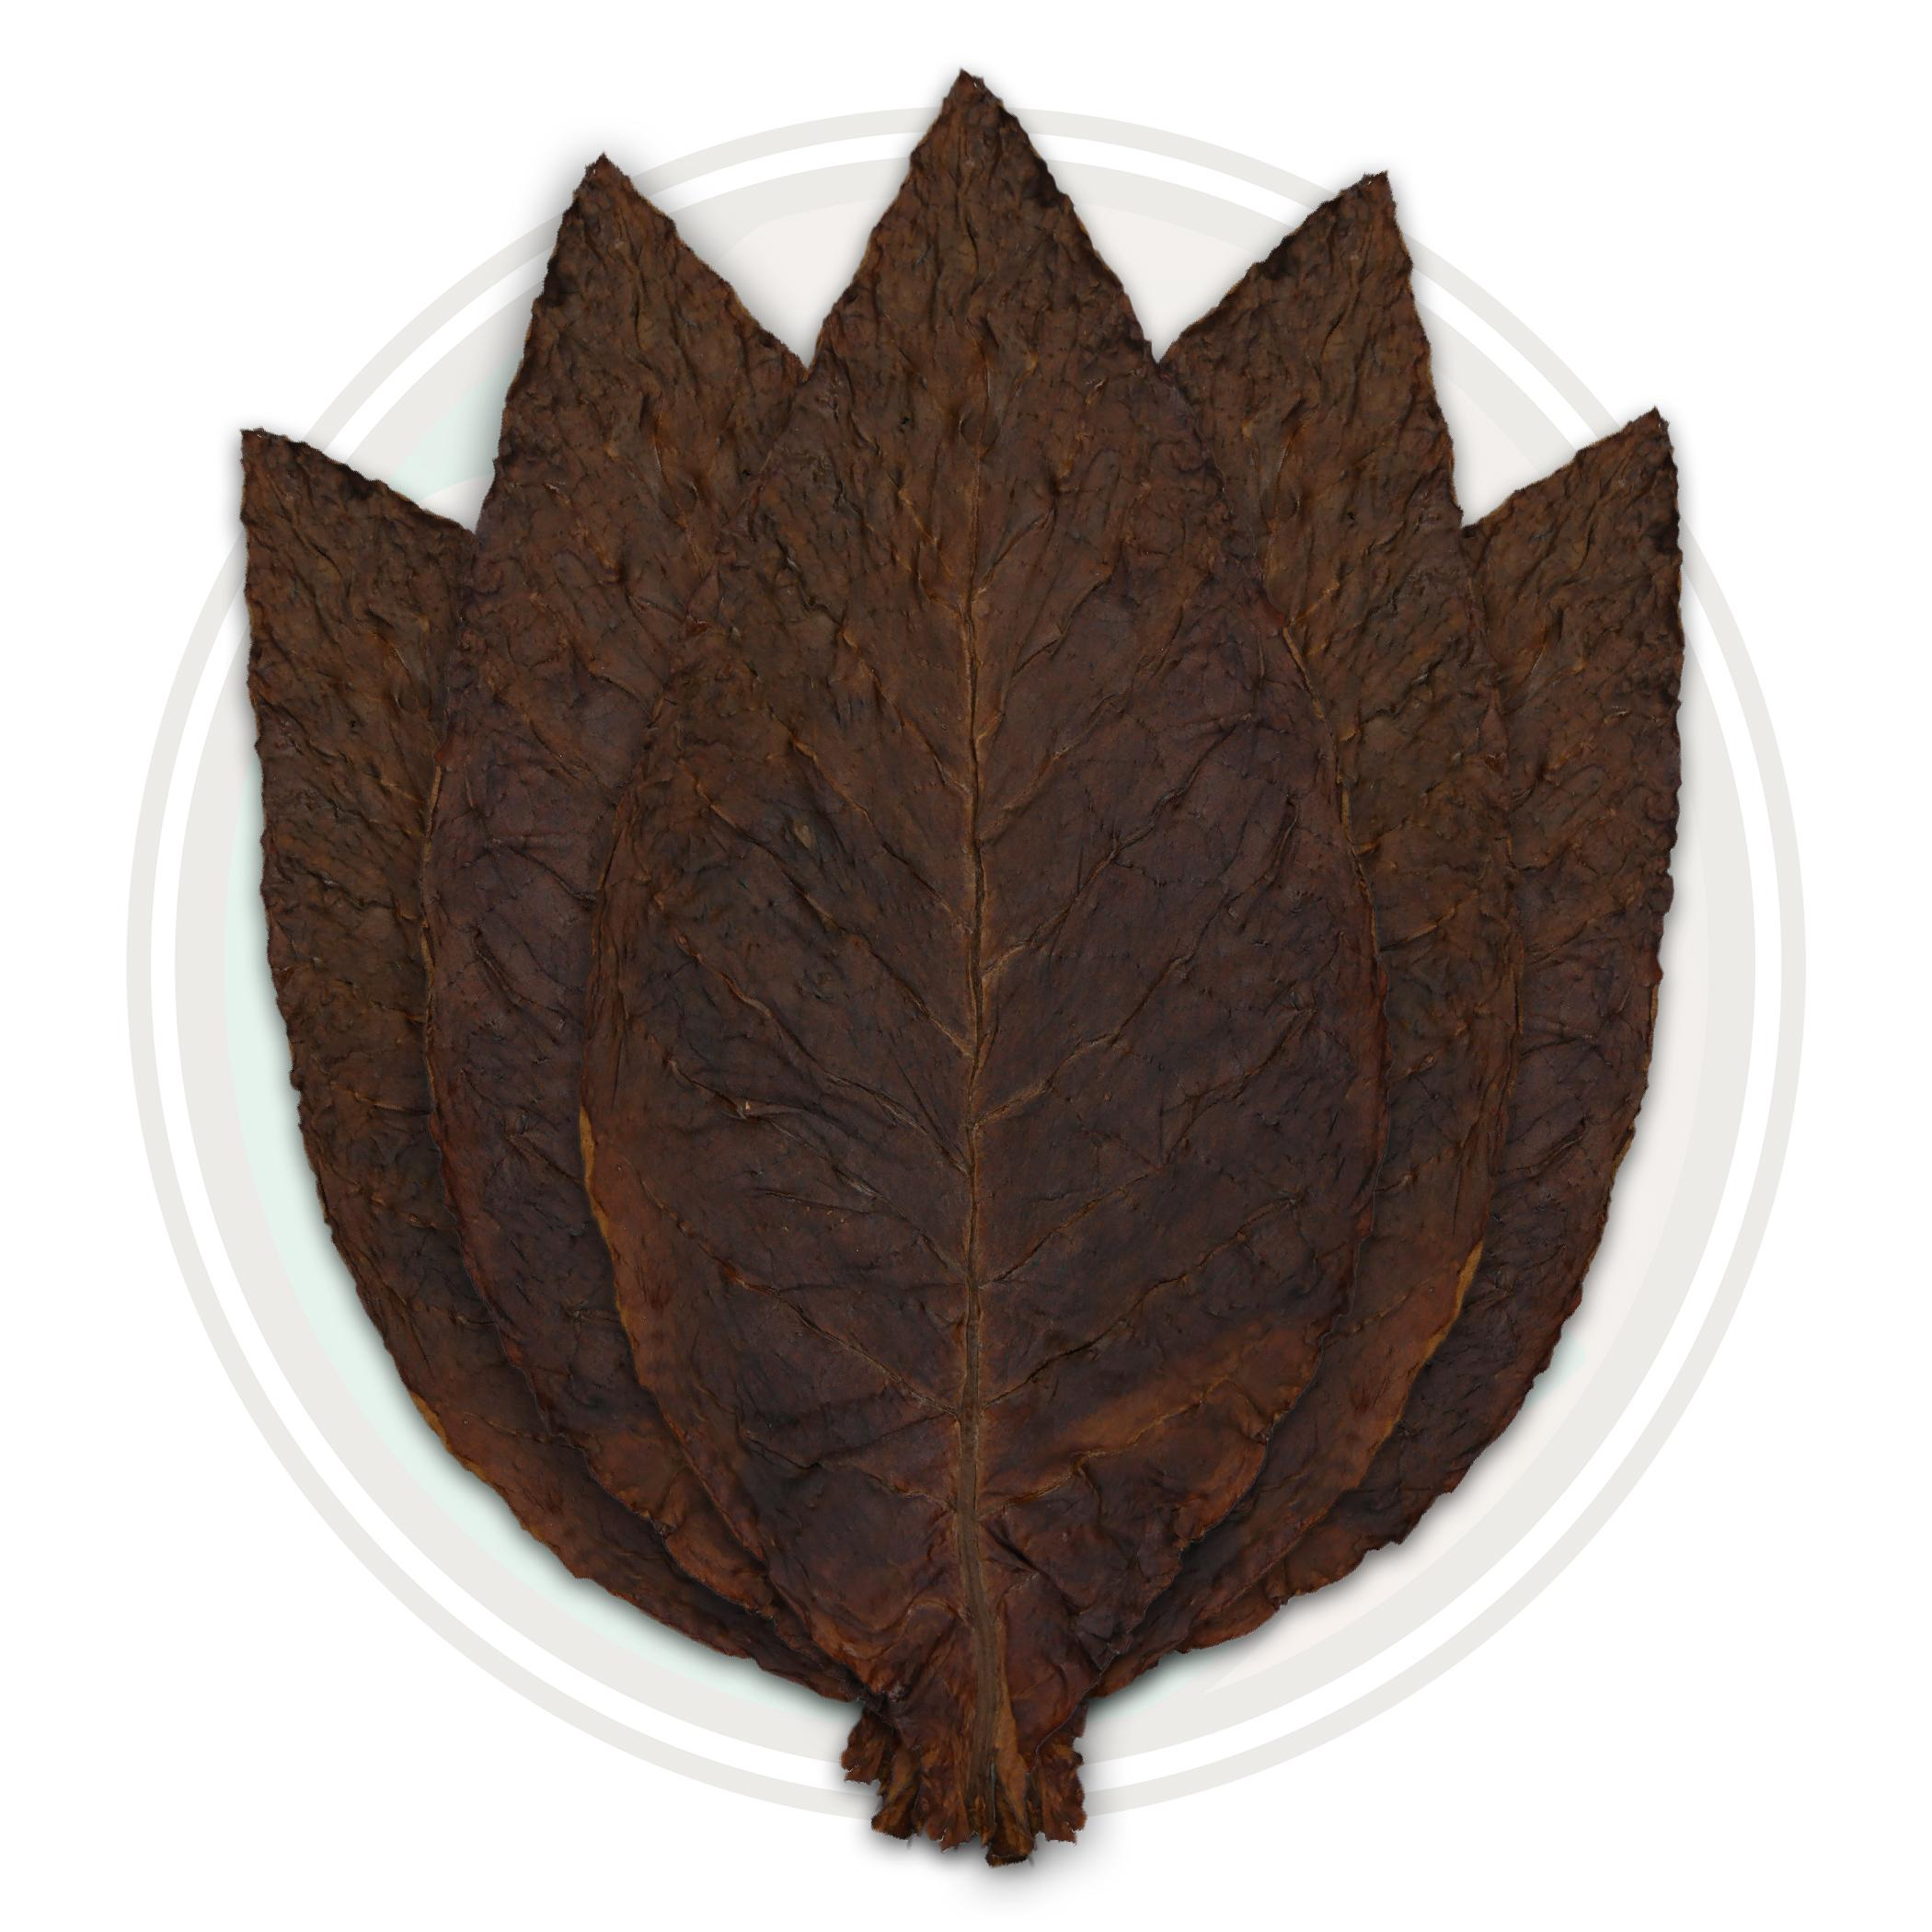 Light Fire Cured Virginia Whole Tobacco Leaf